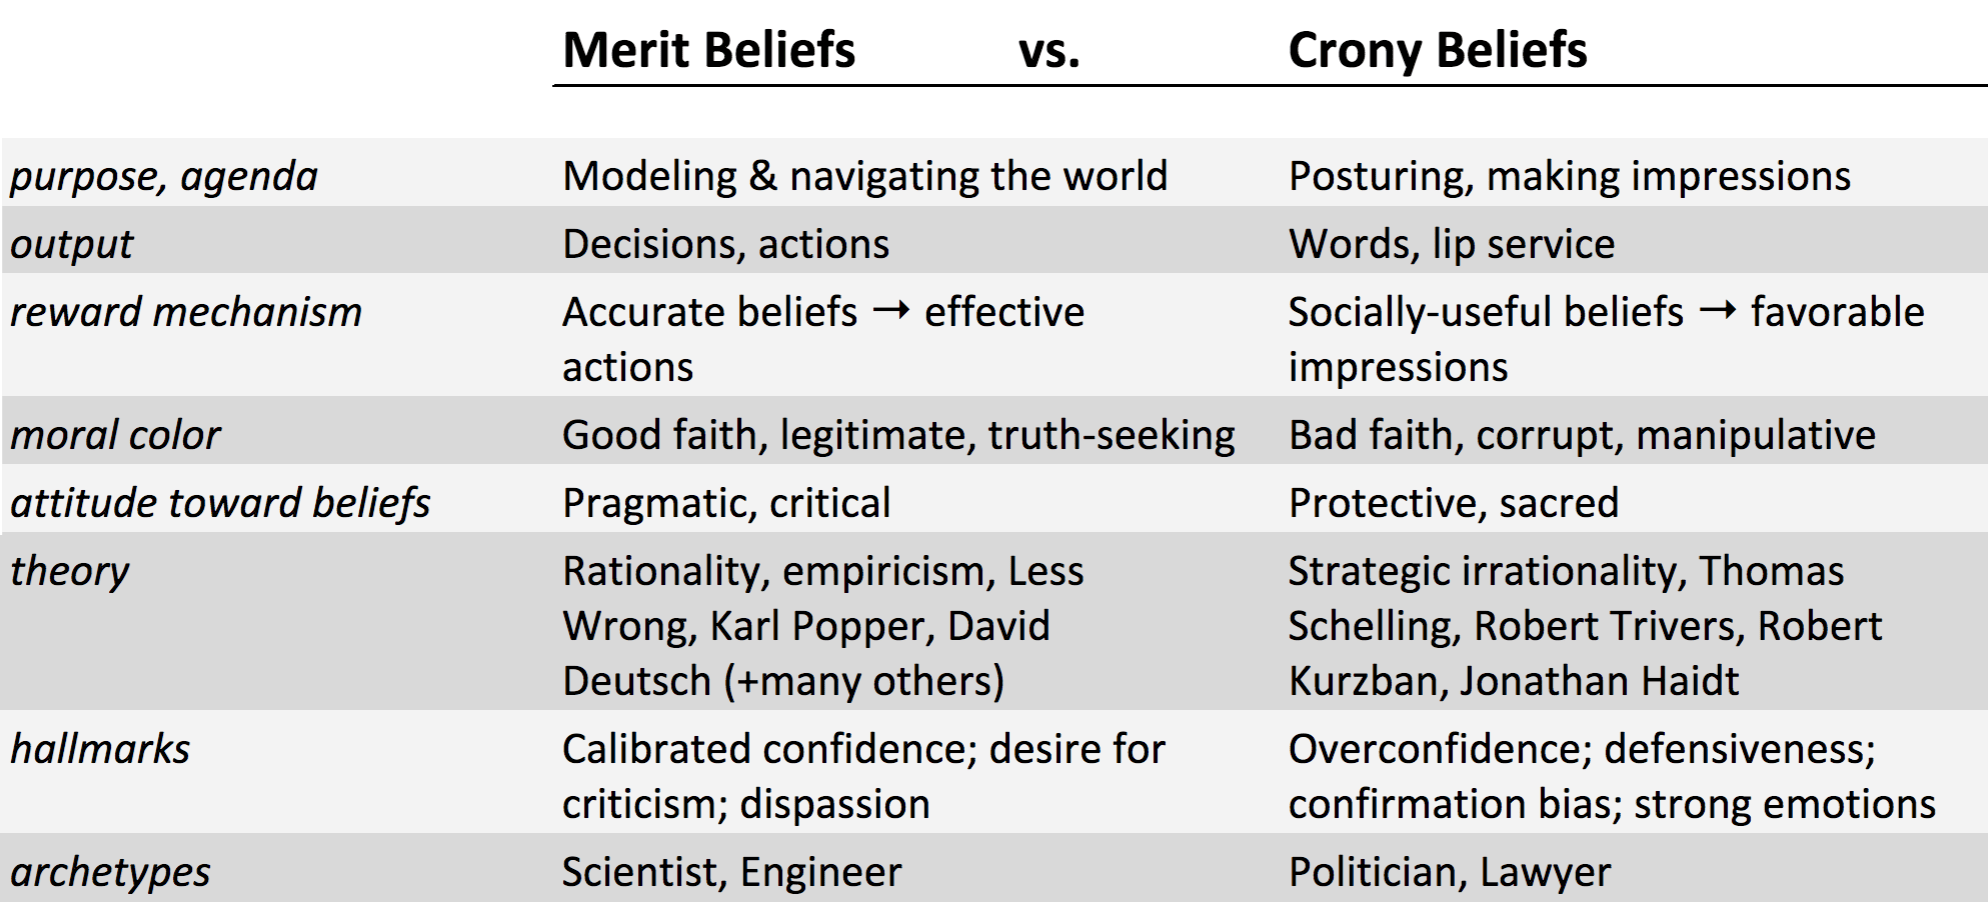 merit_vs_crony_beliefs